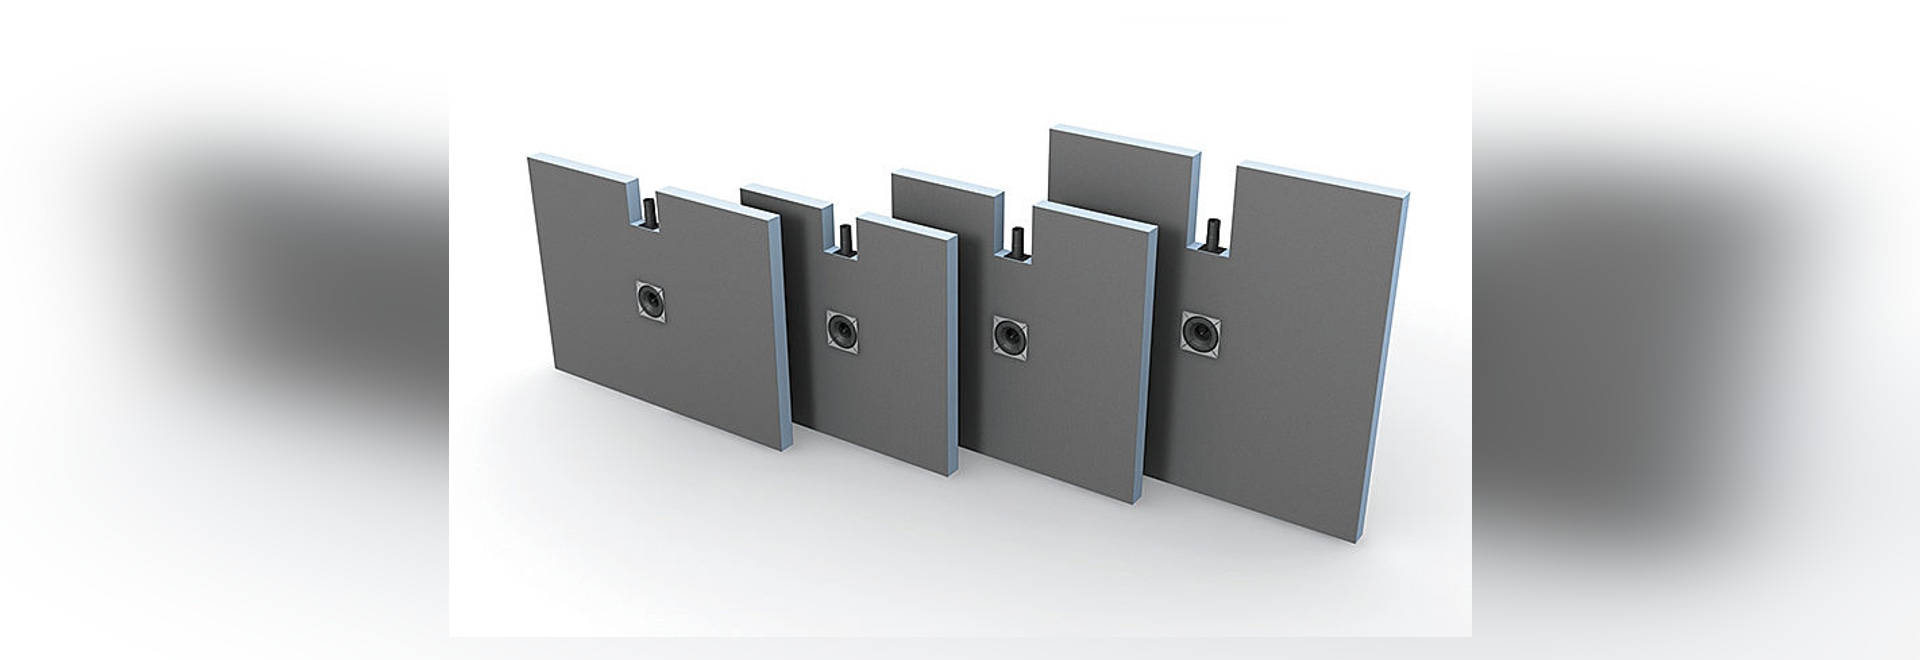 The flattest all-in-one system for floor-level showers from wedi